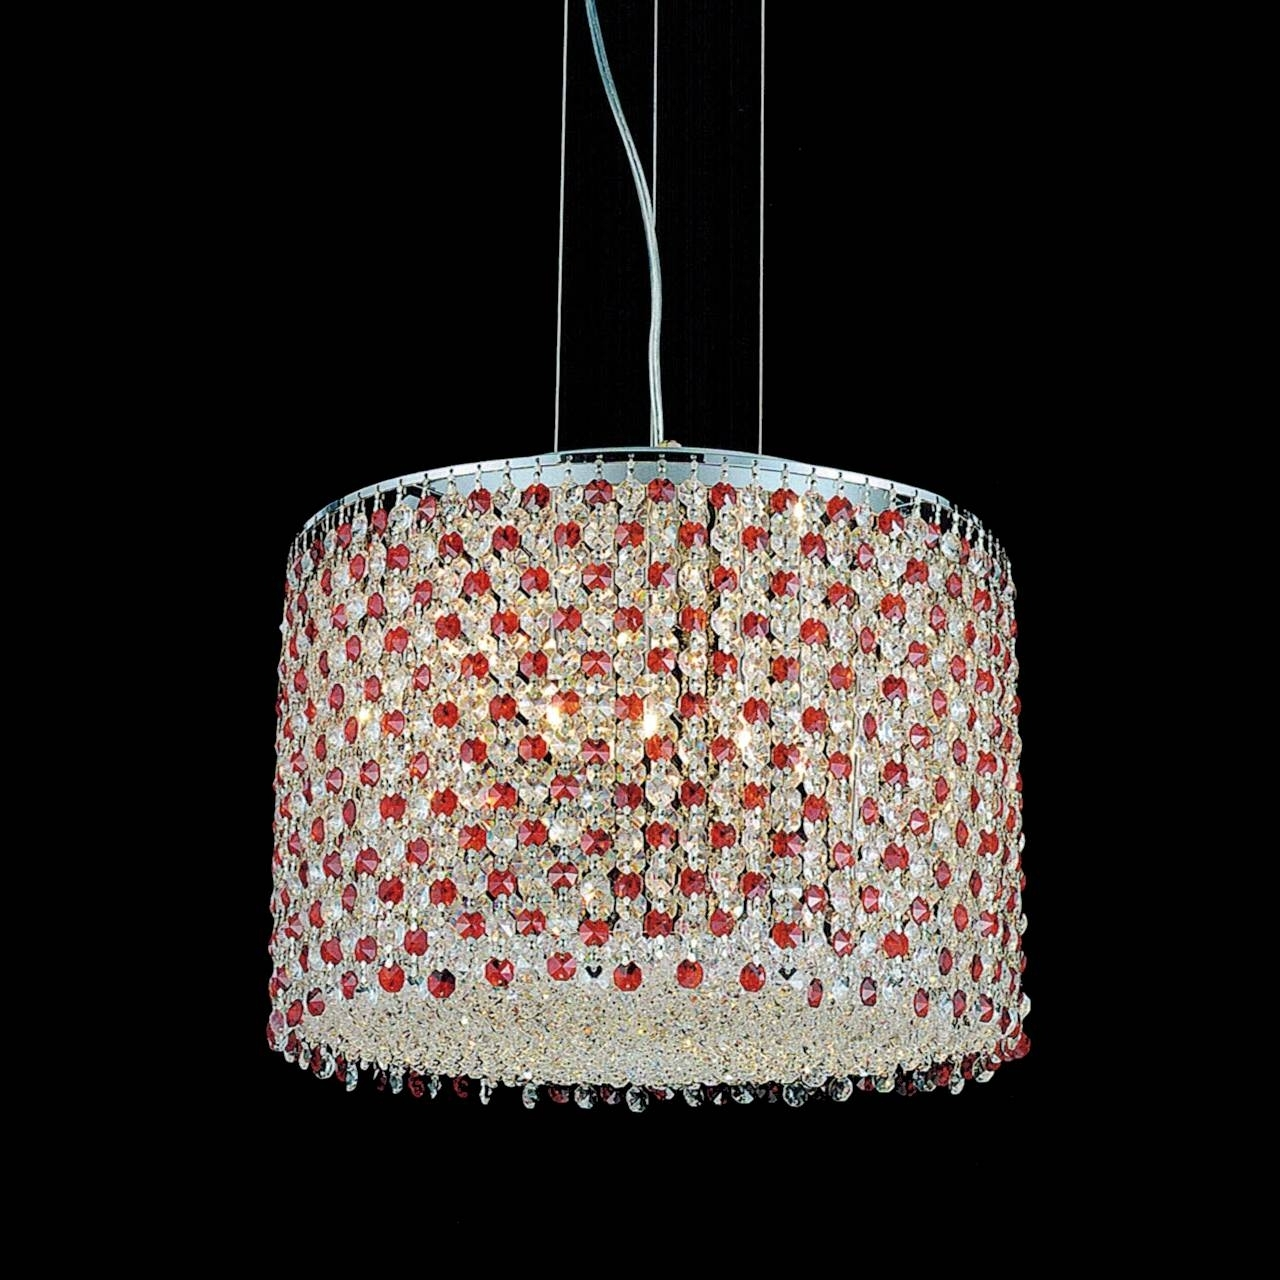 Purple Crystal Chandelier Lights For Current Brizzo Lighting Stores (View 7 of 15)